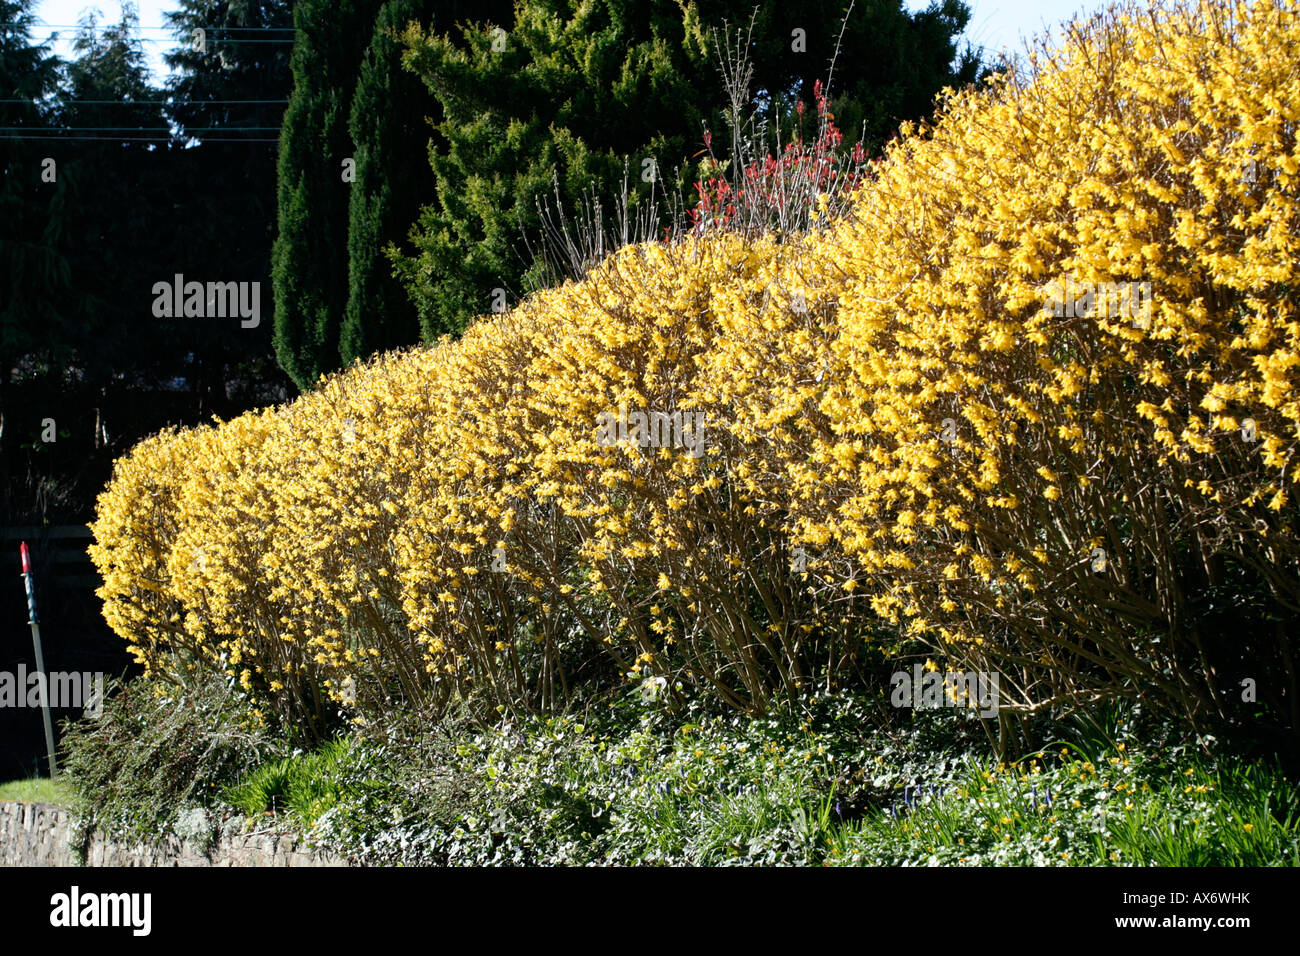 FORSYTHIA HEDGE BLOOMING LATE MARCH - Stock Image